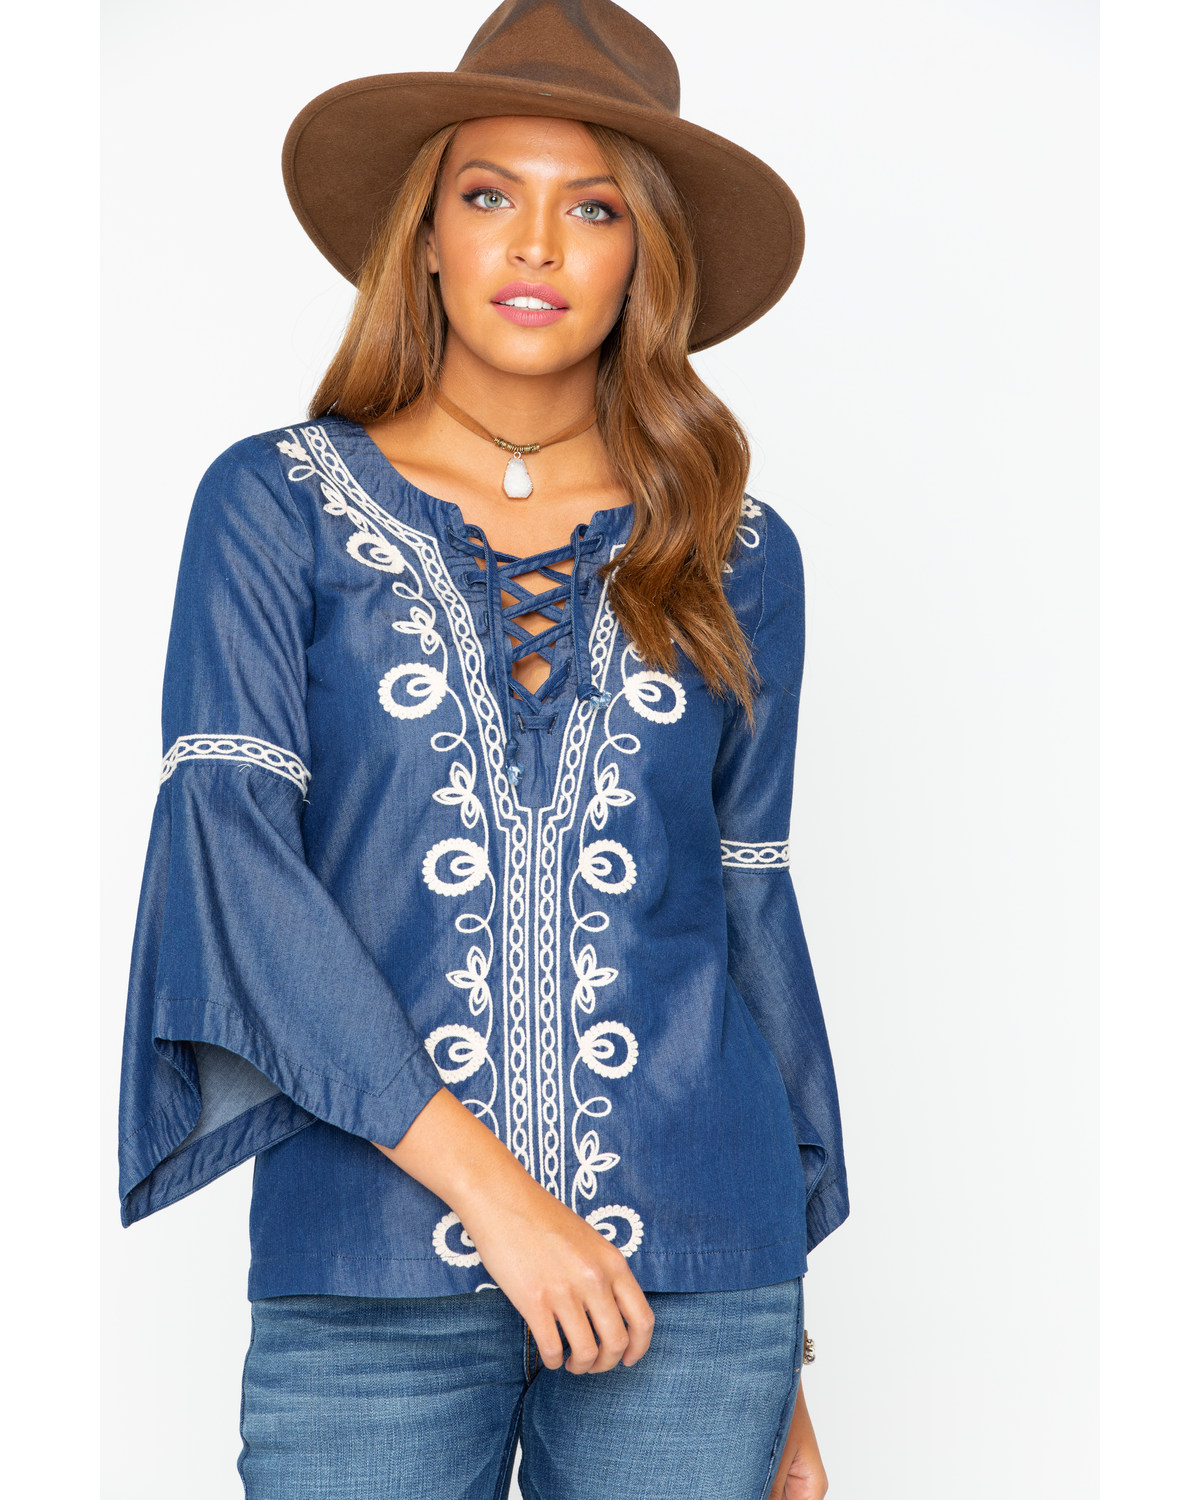 c25603ddbdb3 Zoomed Image Shyanne Women's Embroidered Lace Up Bell Sleeve Top , Blue, ...